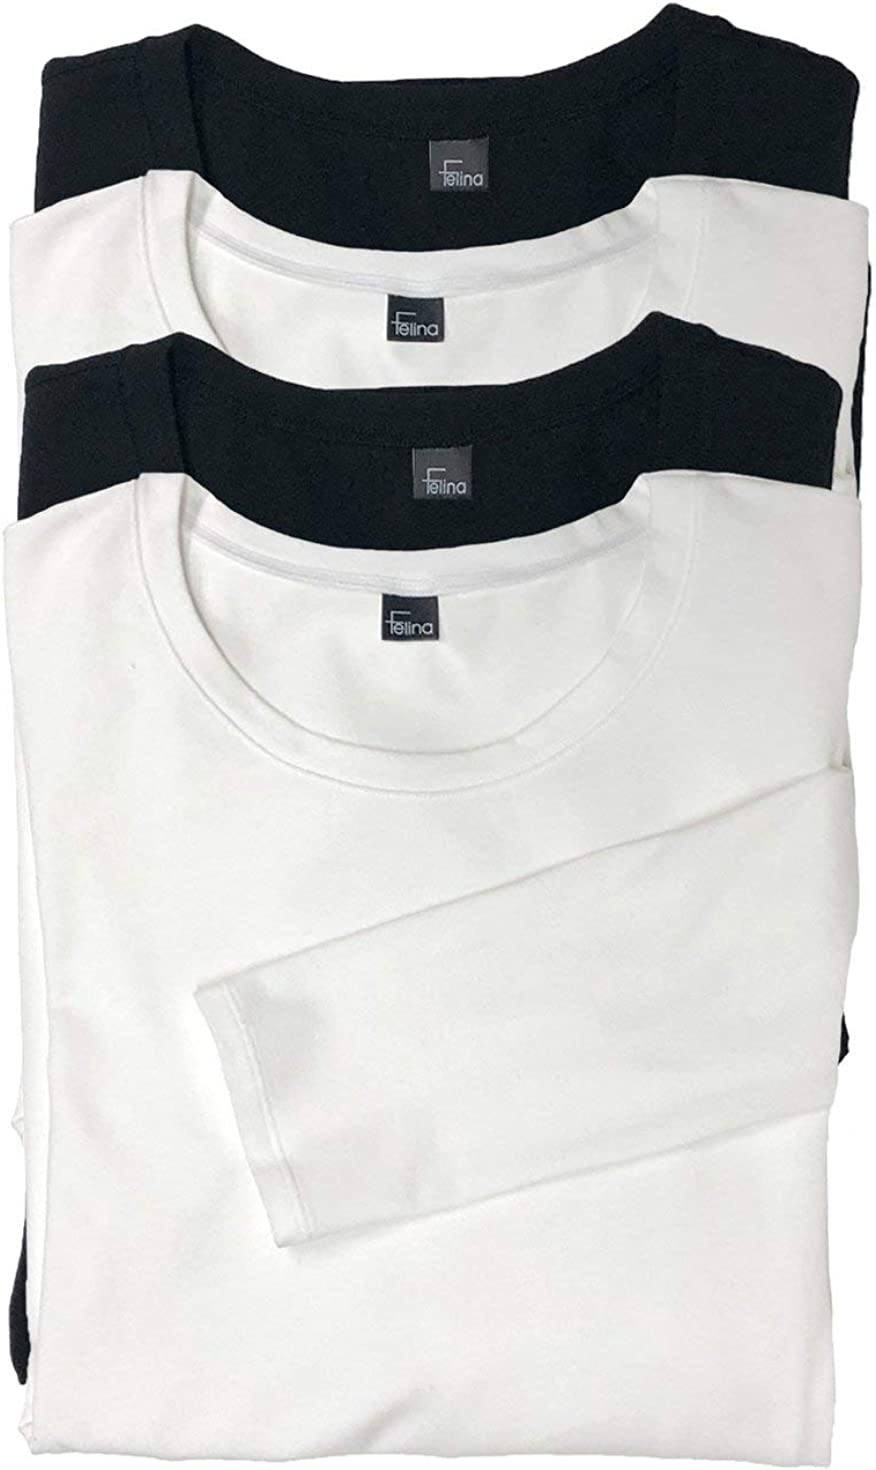 Black /& White Felina 2-Pack Long Sleeve Layering Turtleneck 2-Pack Size Small